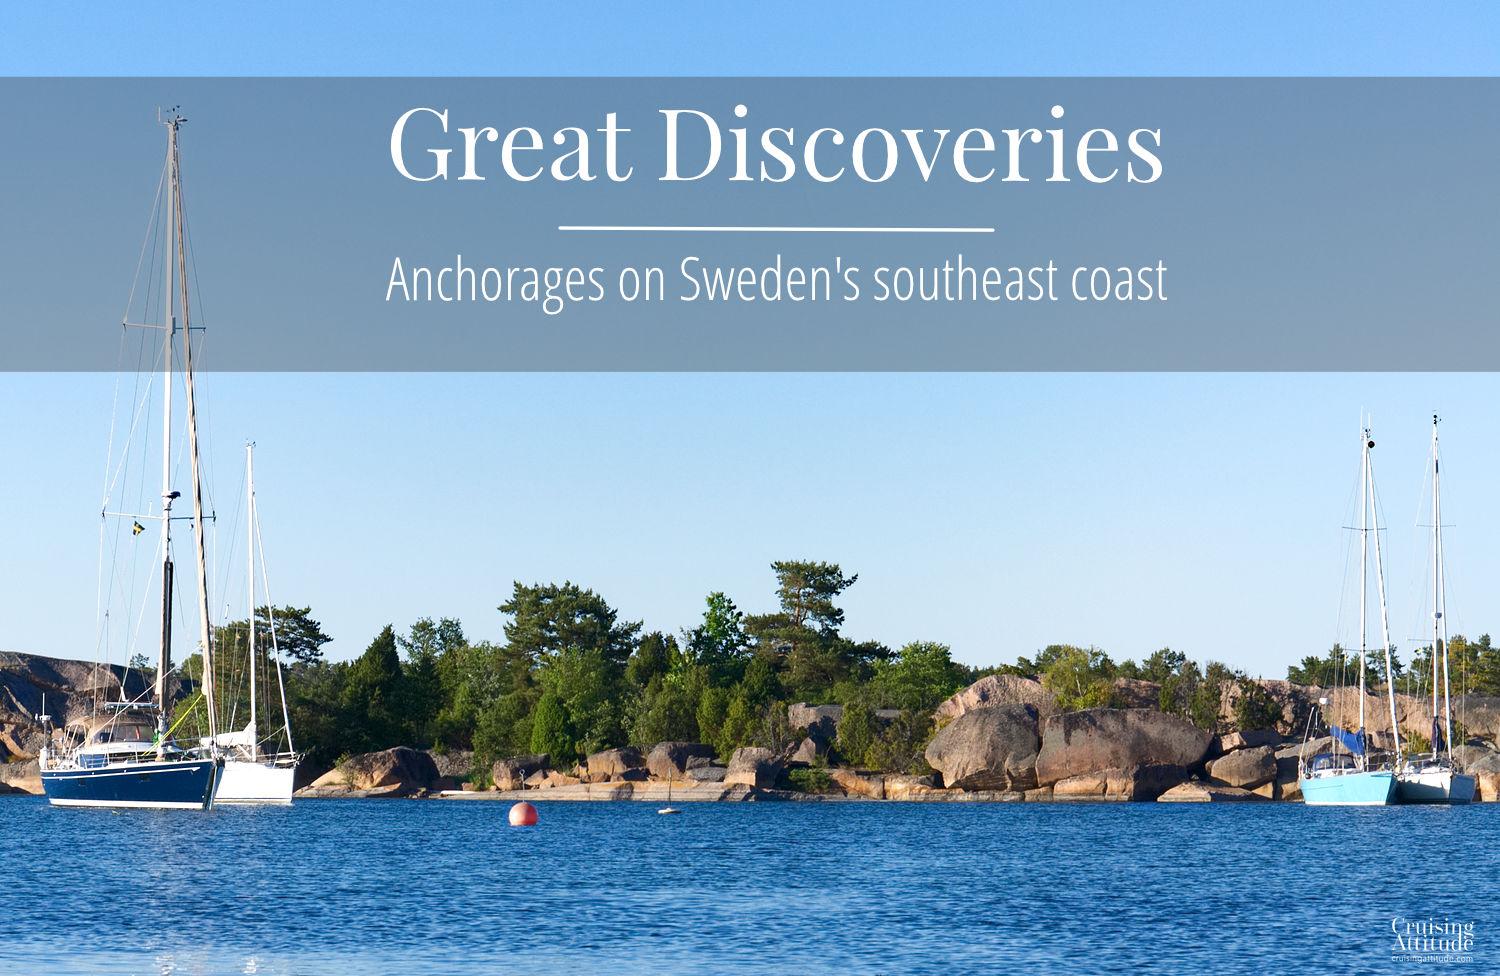 Sweden southeast coast anchorages | Cruising Attitude Sailing Blog - Discovery 55